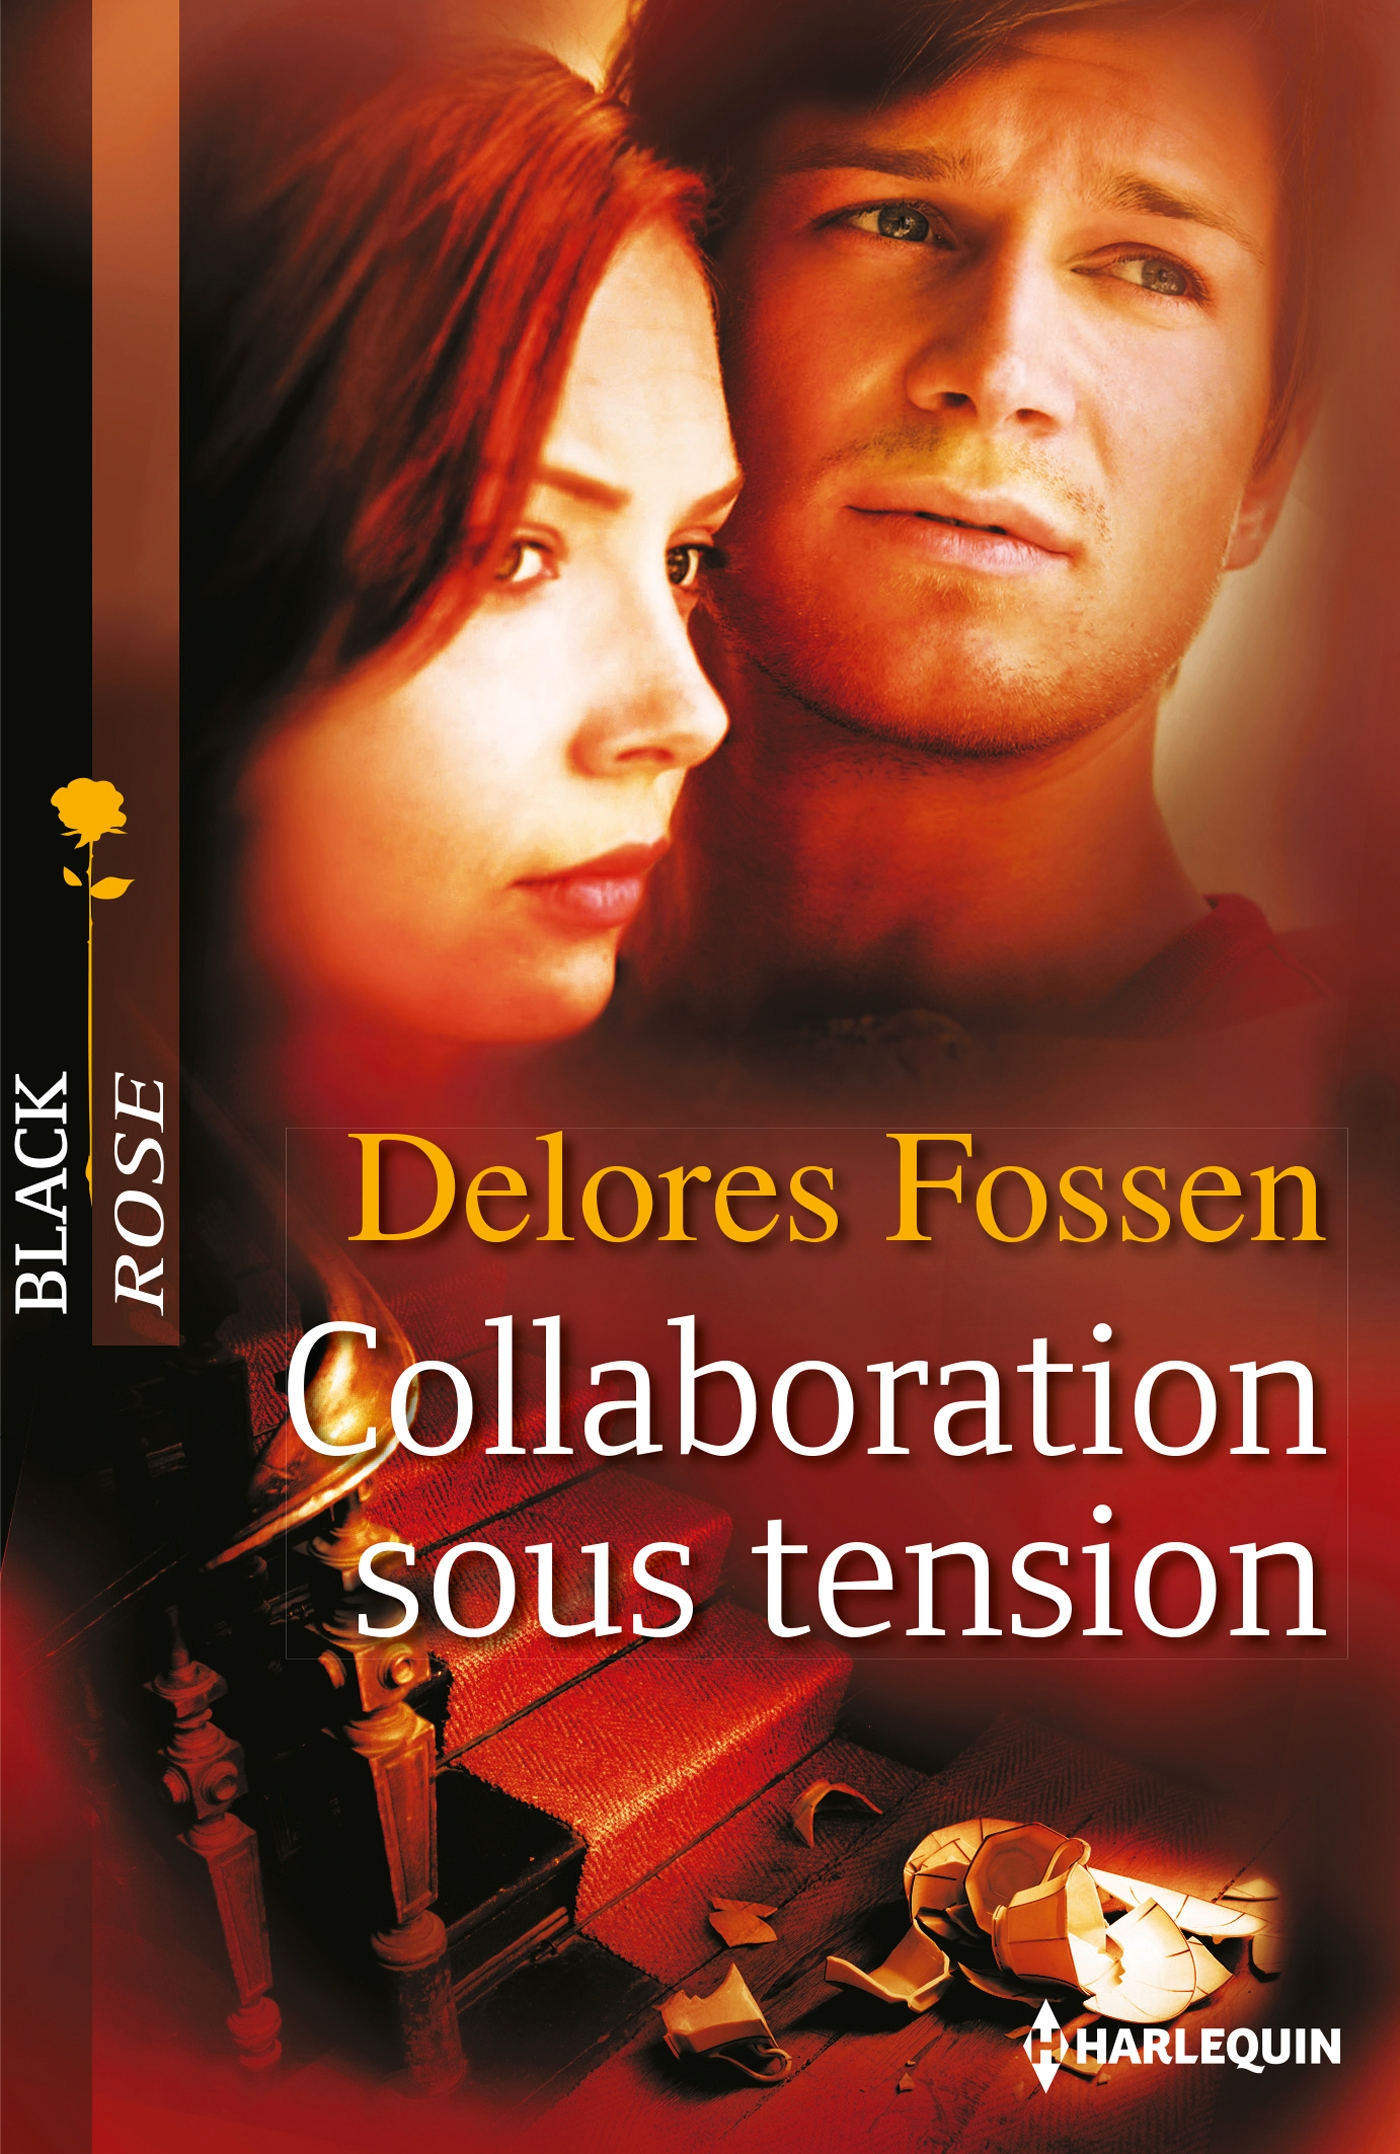 Collaboration sous tension